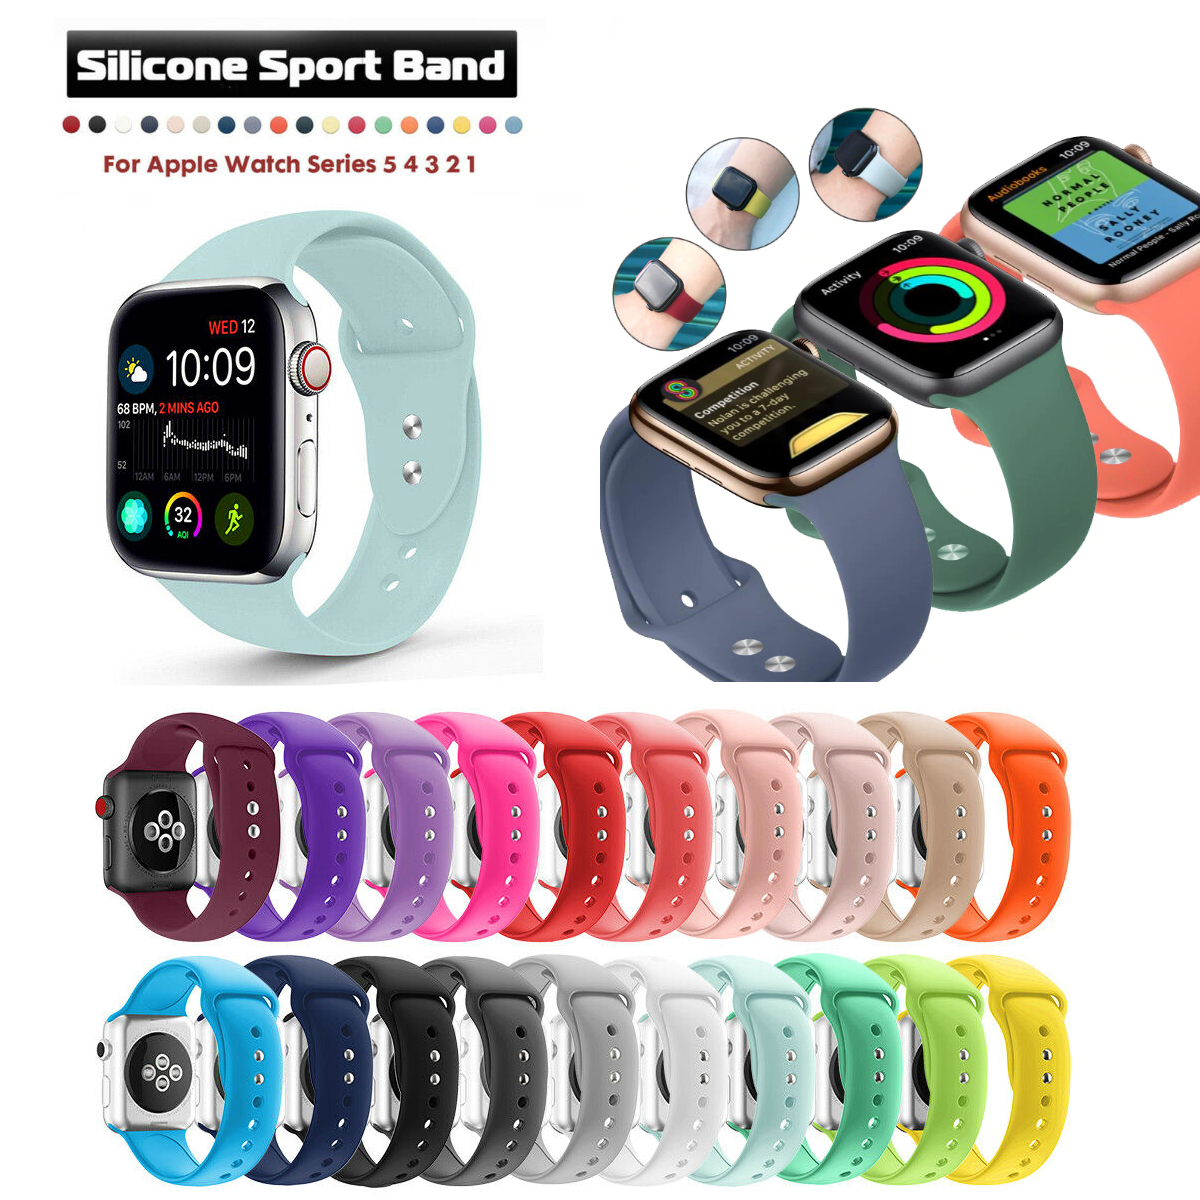 Soft Silicone Sports Strap Band Wrist Smart Watch Straps 42mm 44mm Silicon Rubber Bracelet Watchbands Strap For iWatch Series 1 2 3 4 5 6 T500 T500 Plus T55 fk78 W26 W26+ HW22 MC72 Pro Wristband 42/44mm Replacement Smartwatches Straps - More Color Options